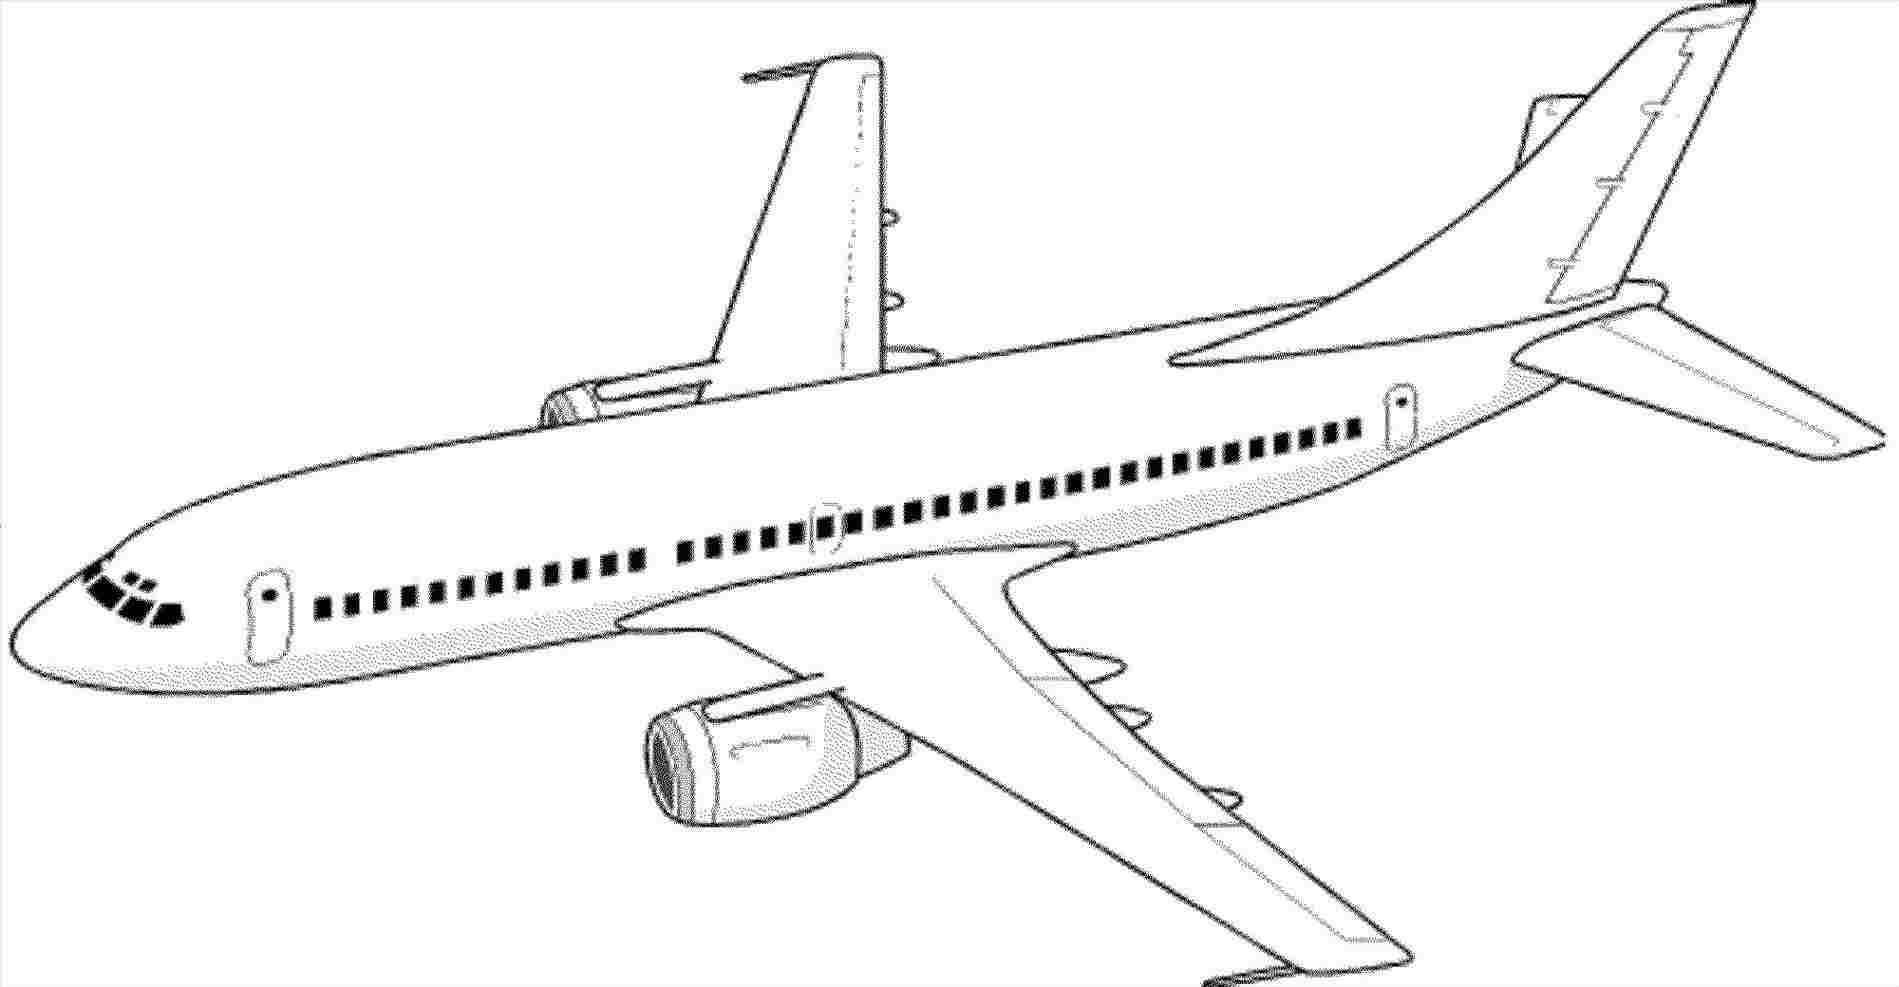 drawing of an airplane airplane drawing easy at paintingvalleycom explore an drawing airplane of